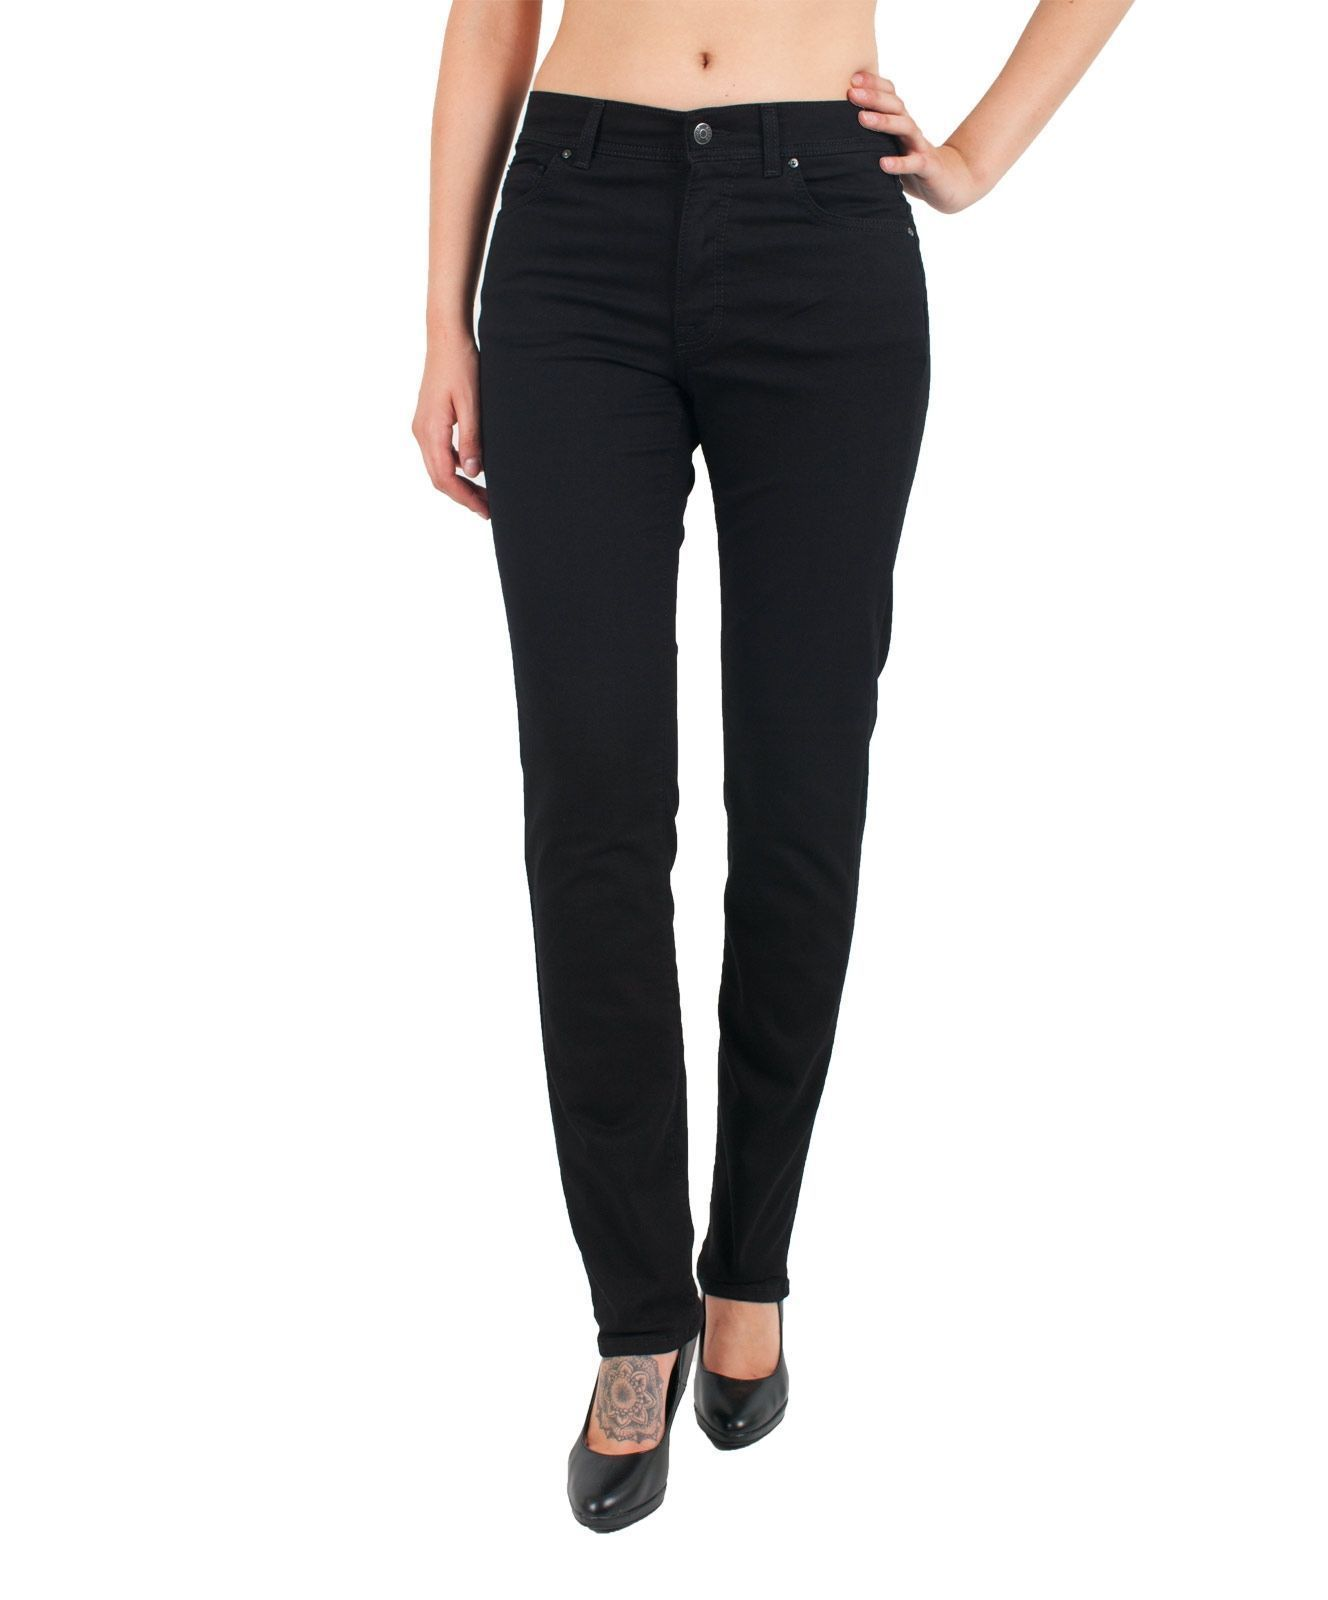 Angels Jeans Cici Ultra Power Stretch Everblack